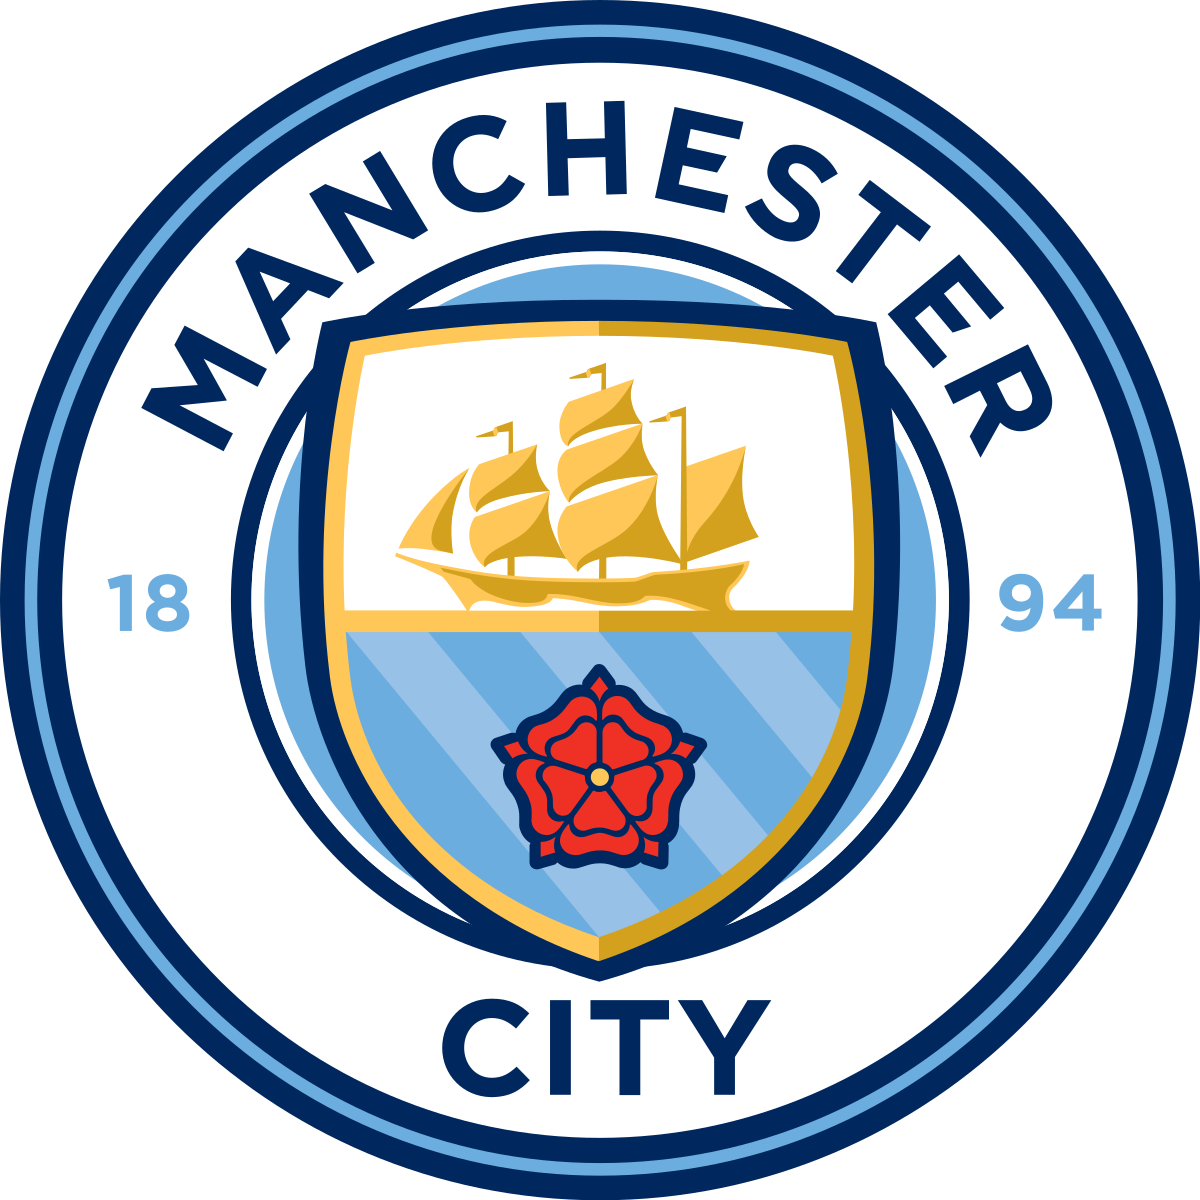 Manchester City Logo 2019 20 Uefa Champions League Manchester City Logo Manchester City Football Club Manchester City